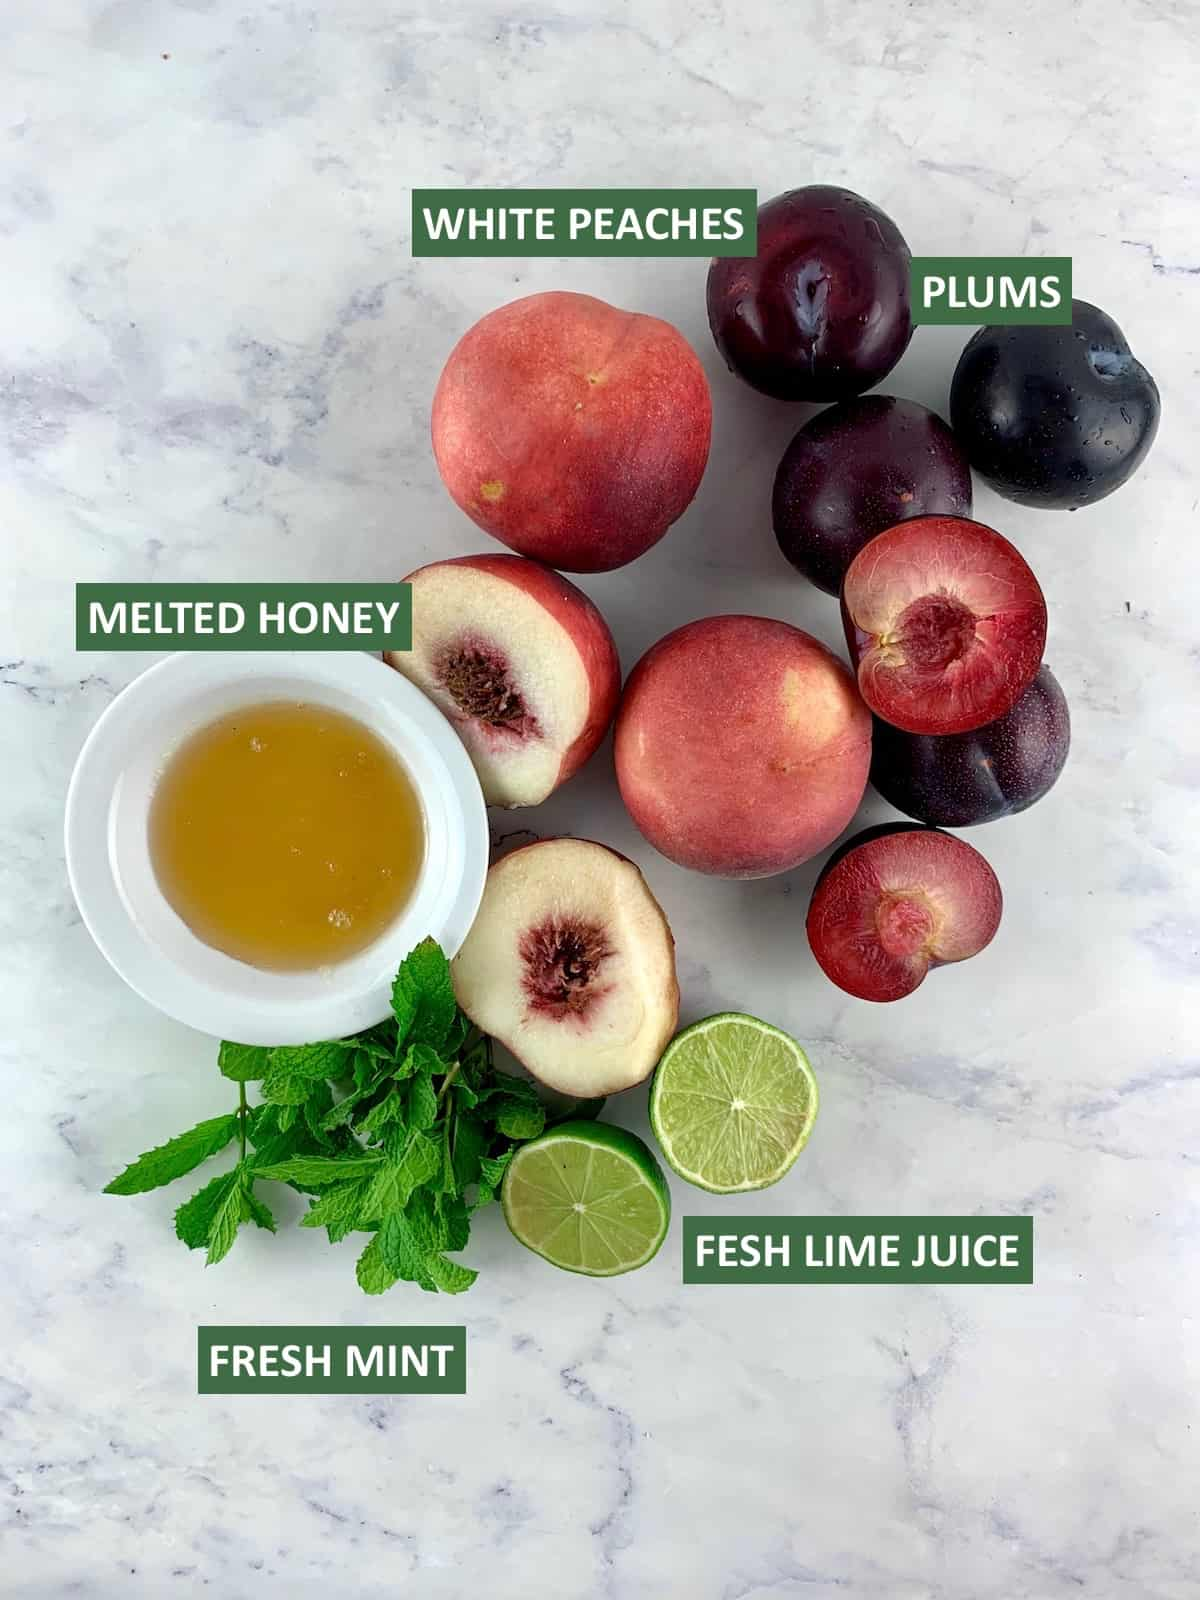 LABELLED INGREDIENTS FOR WHITE PEACH SALAD